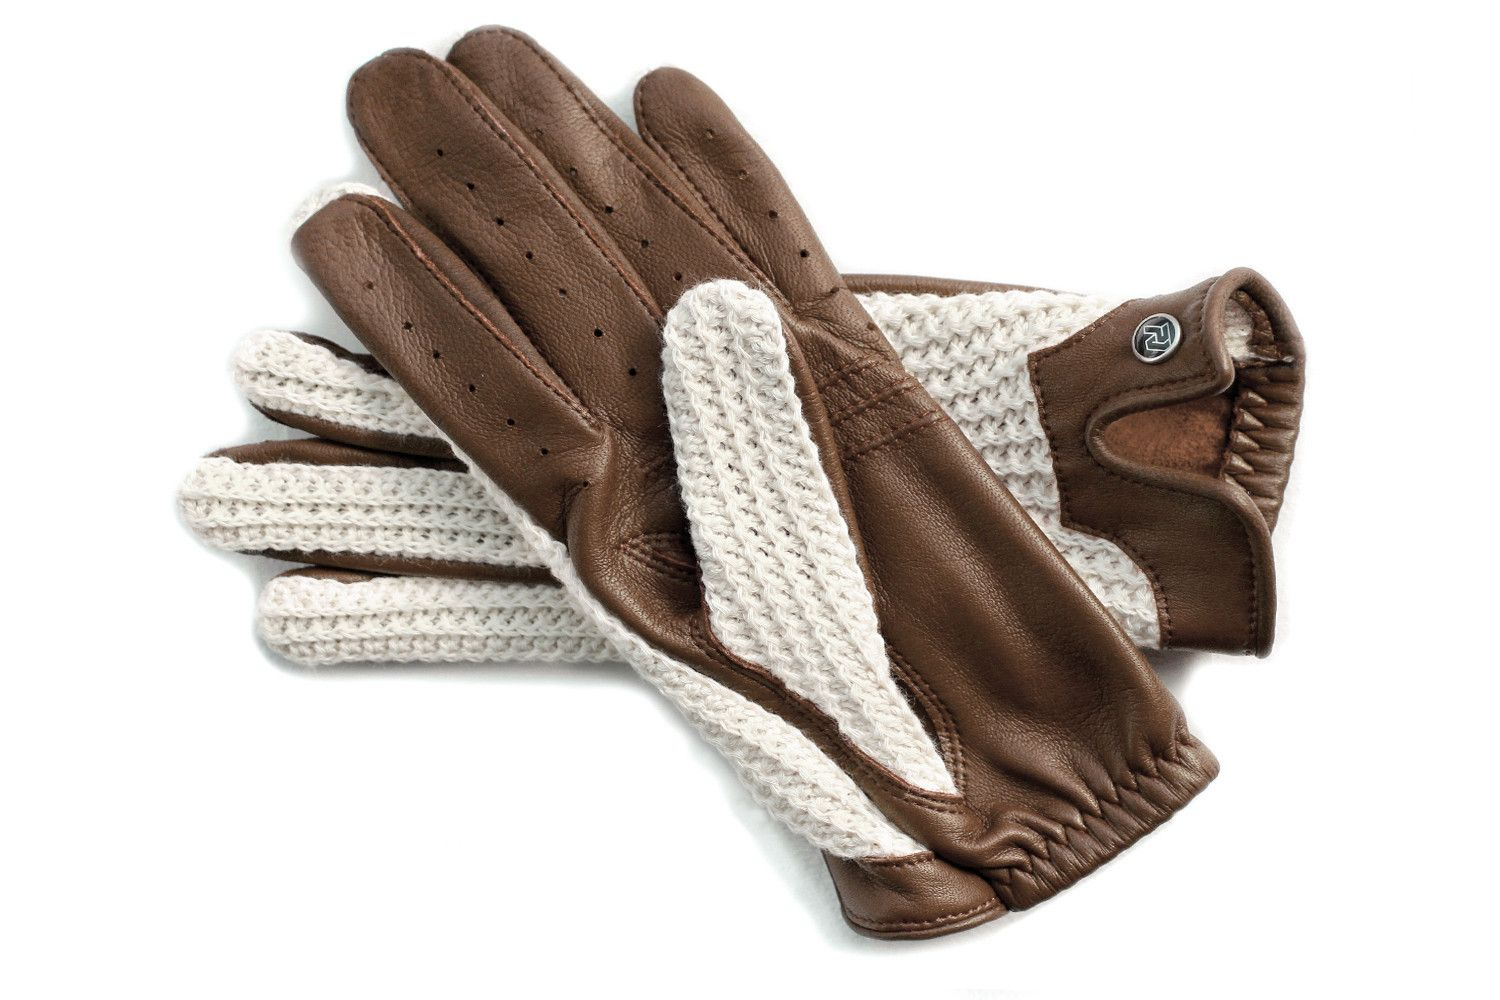 Driving gloves for suede steering wheel - Throughout The And Into The Racing Drivers Relied On The Stringback Driving Glove To Protect Their Palms From Wooden Steering Wheels And Keep Their